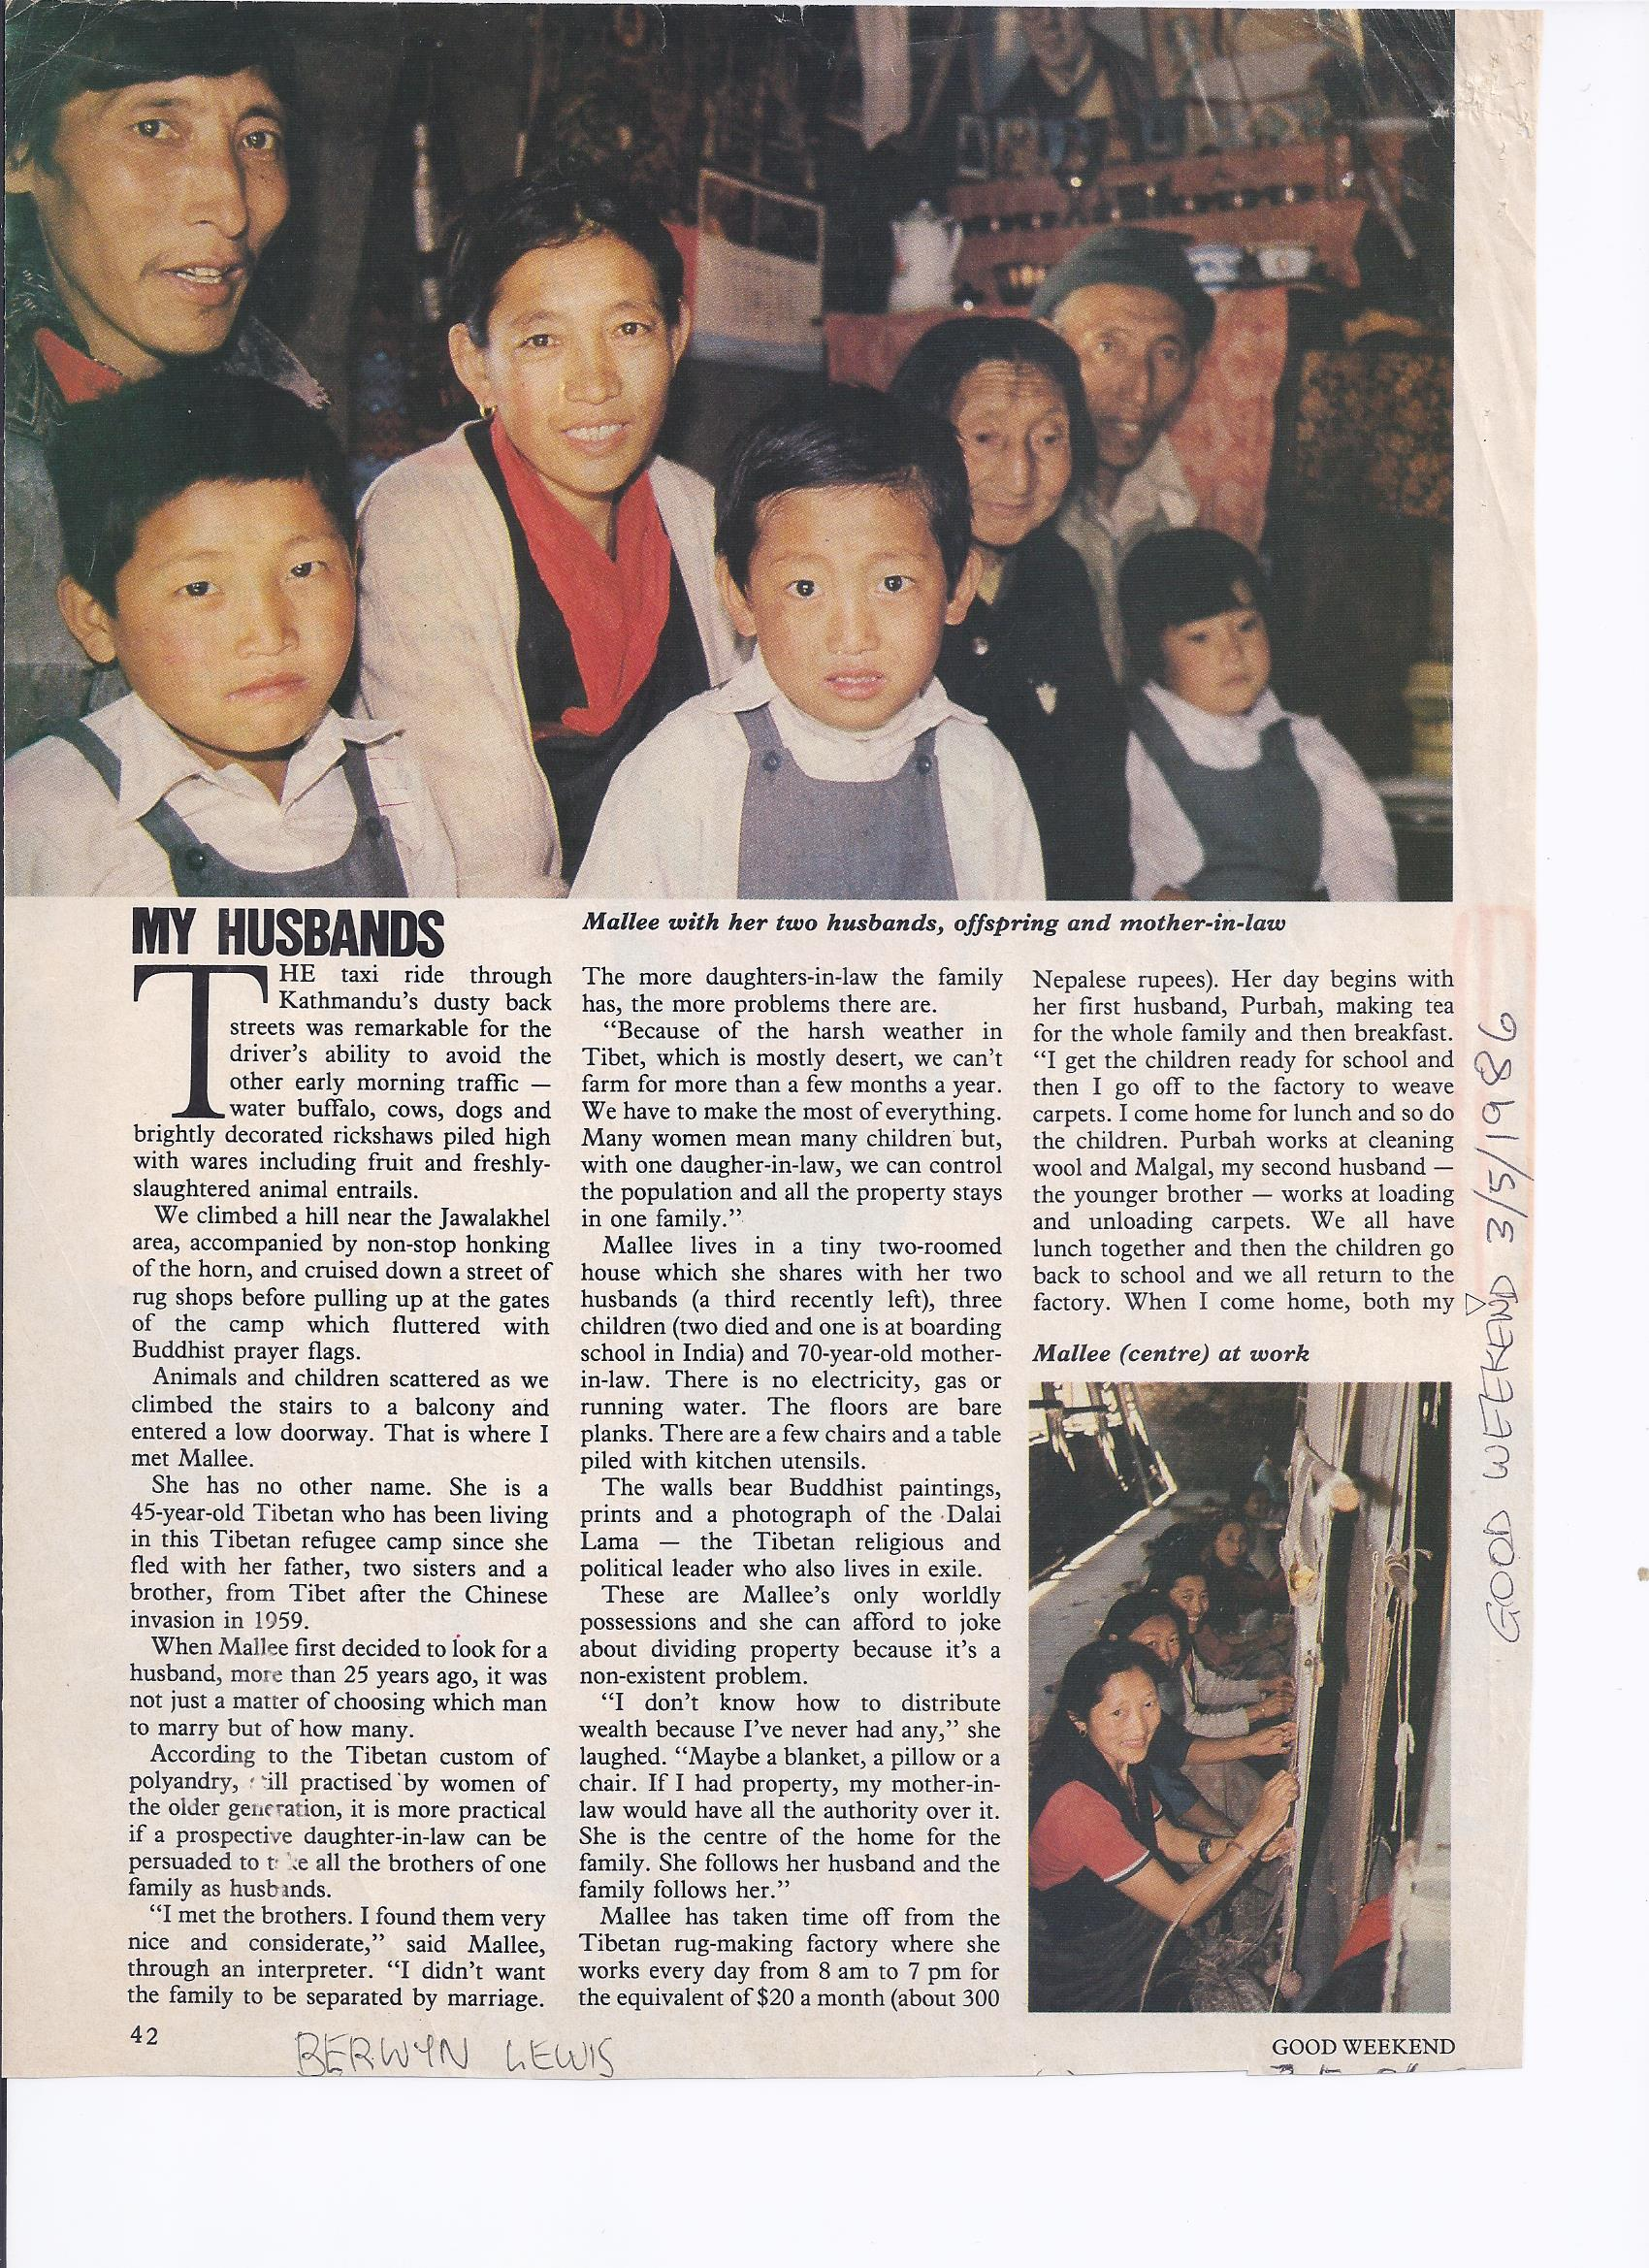 TIBETAN REFUGEE AND HER HUSBANDS0002.jpg